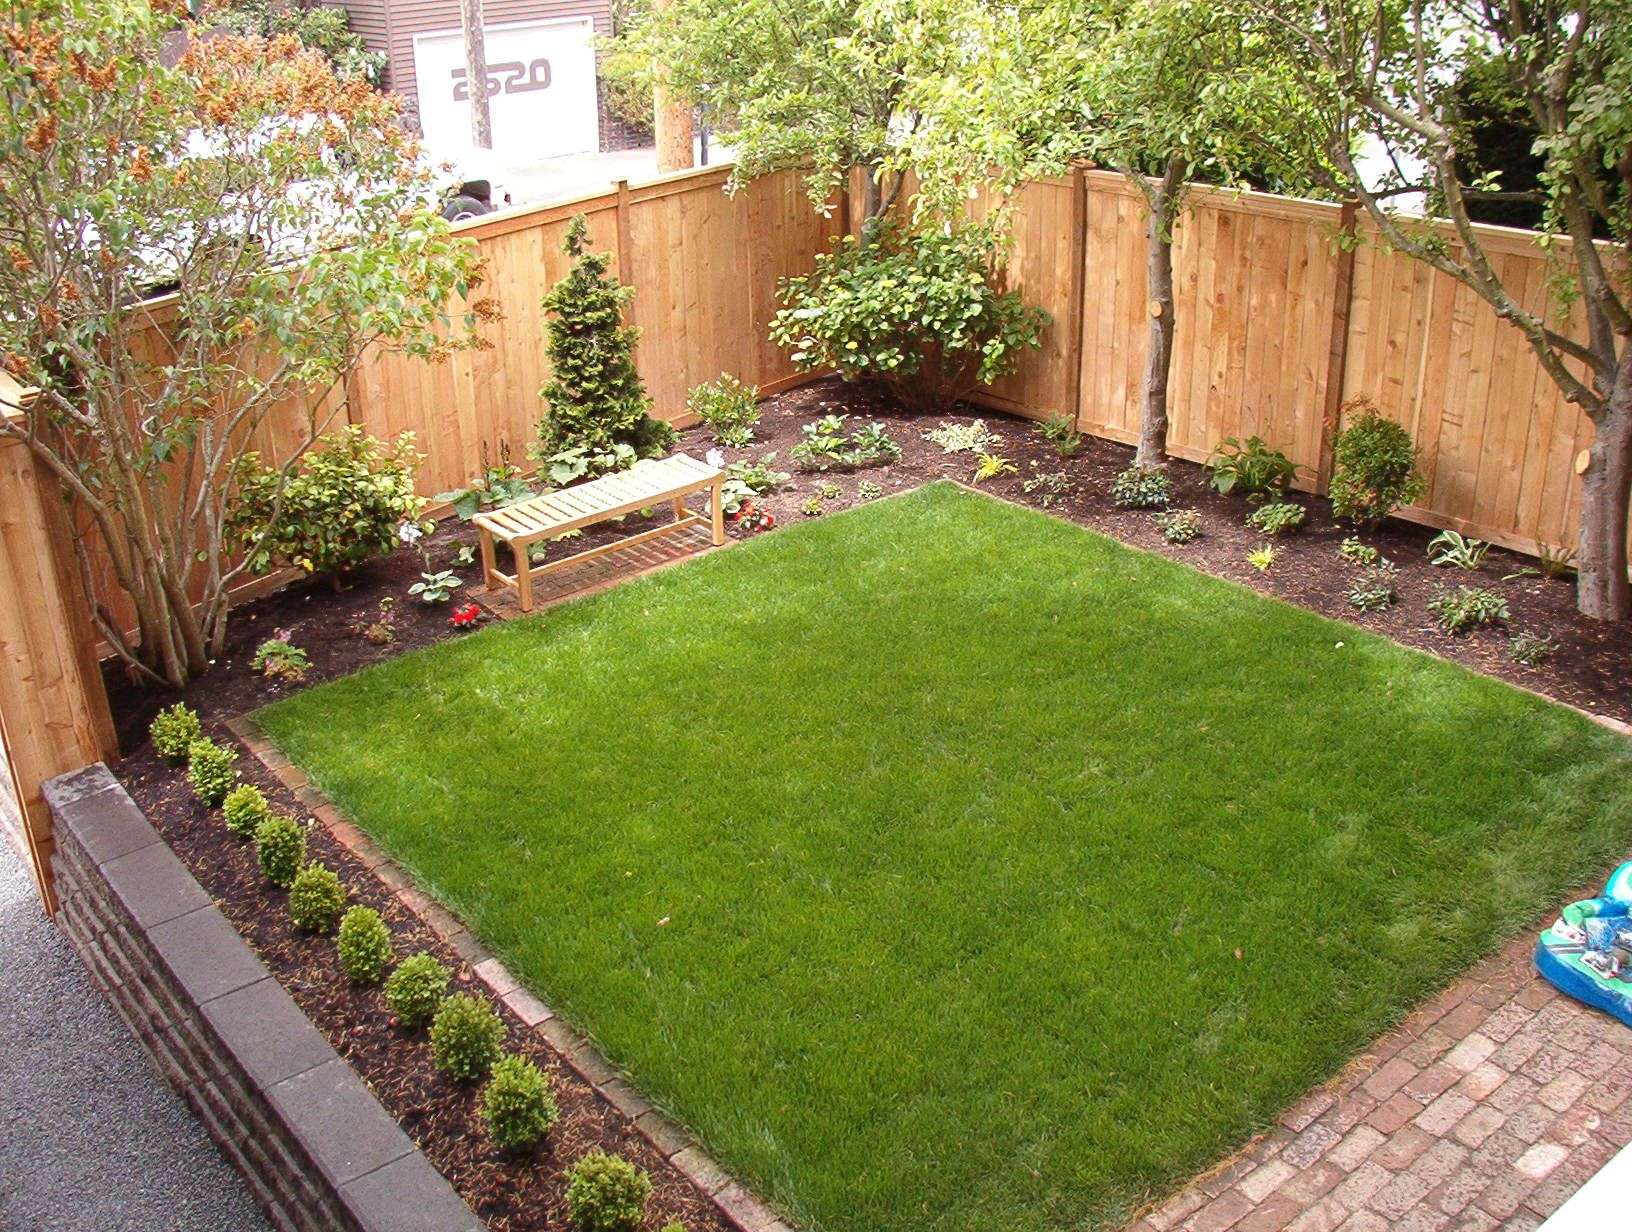 Sod lawn for children to play on landscape ideas for Small garden lawn designs